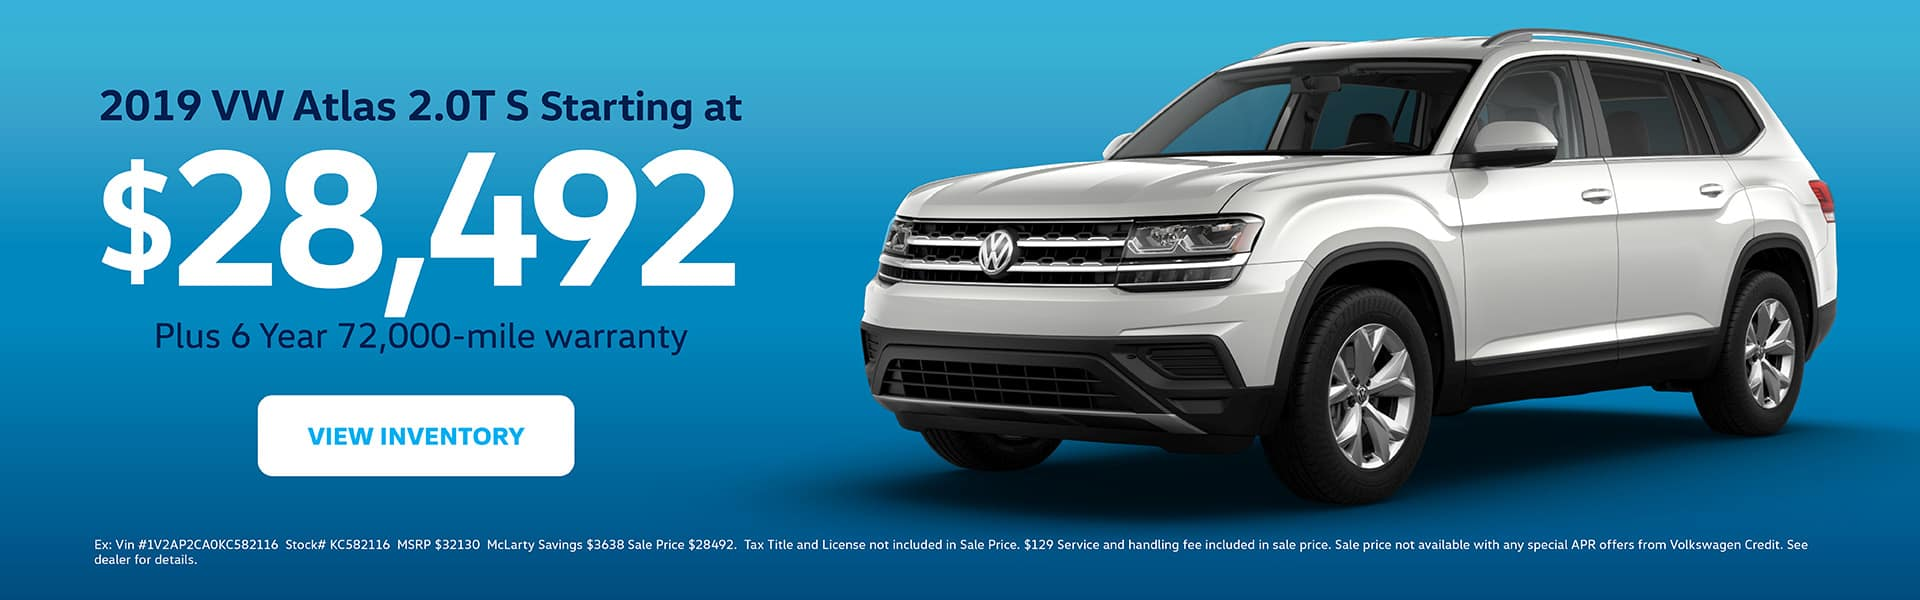 View inventory of the 2019 Atlas 2.0T starting at $28,363. 6 year/72,000 warranty included.